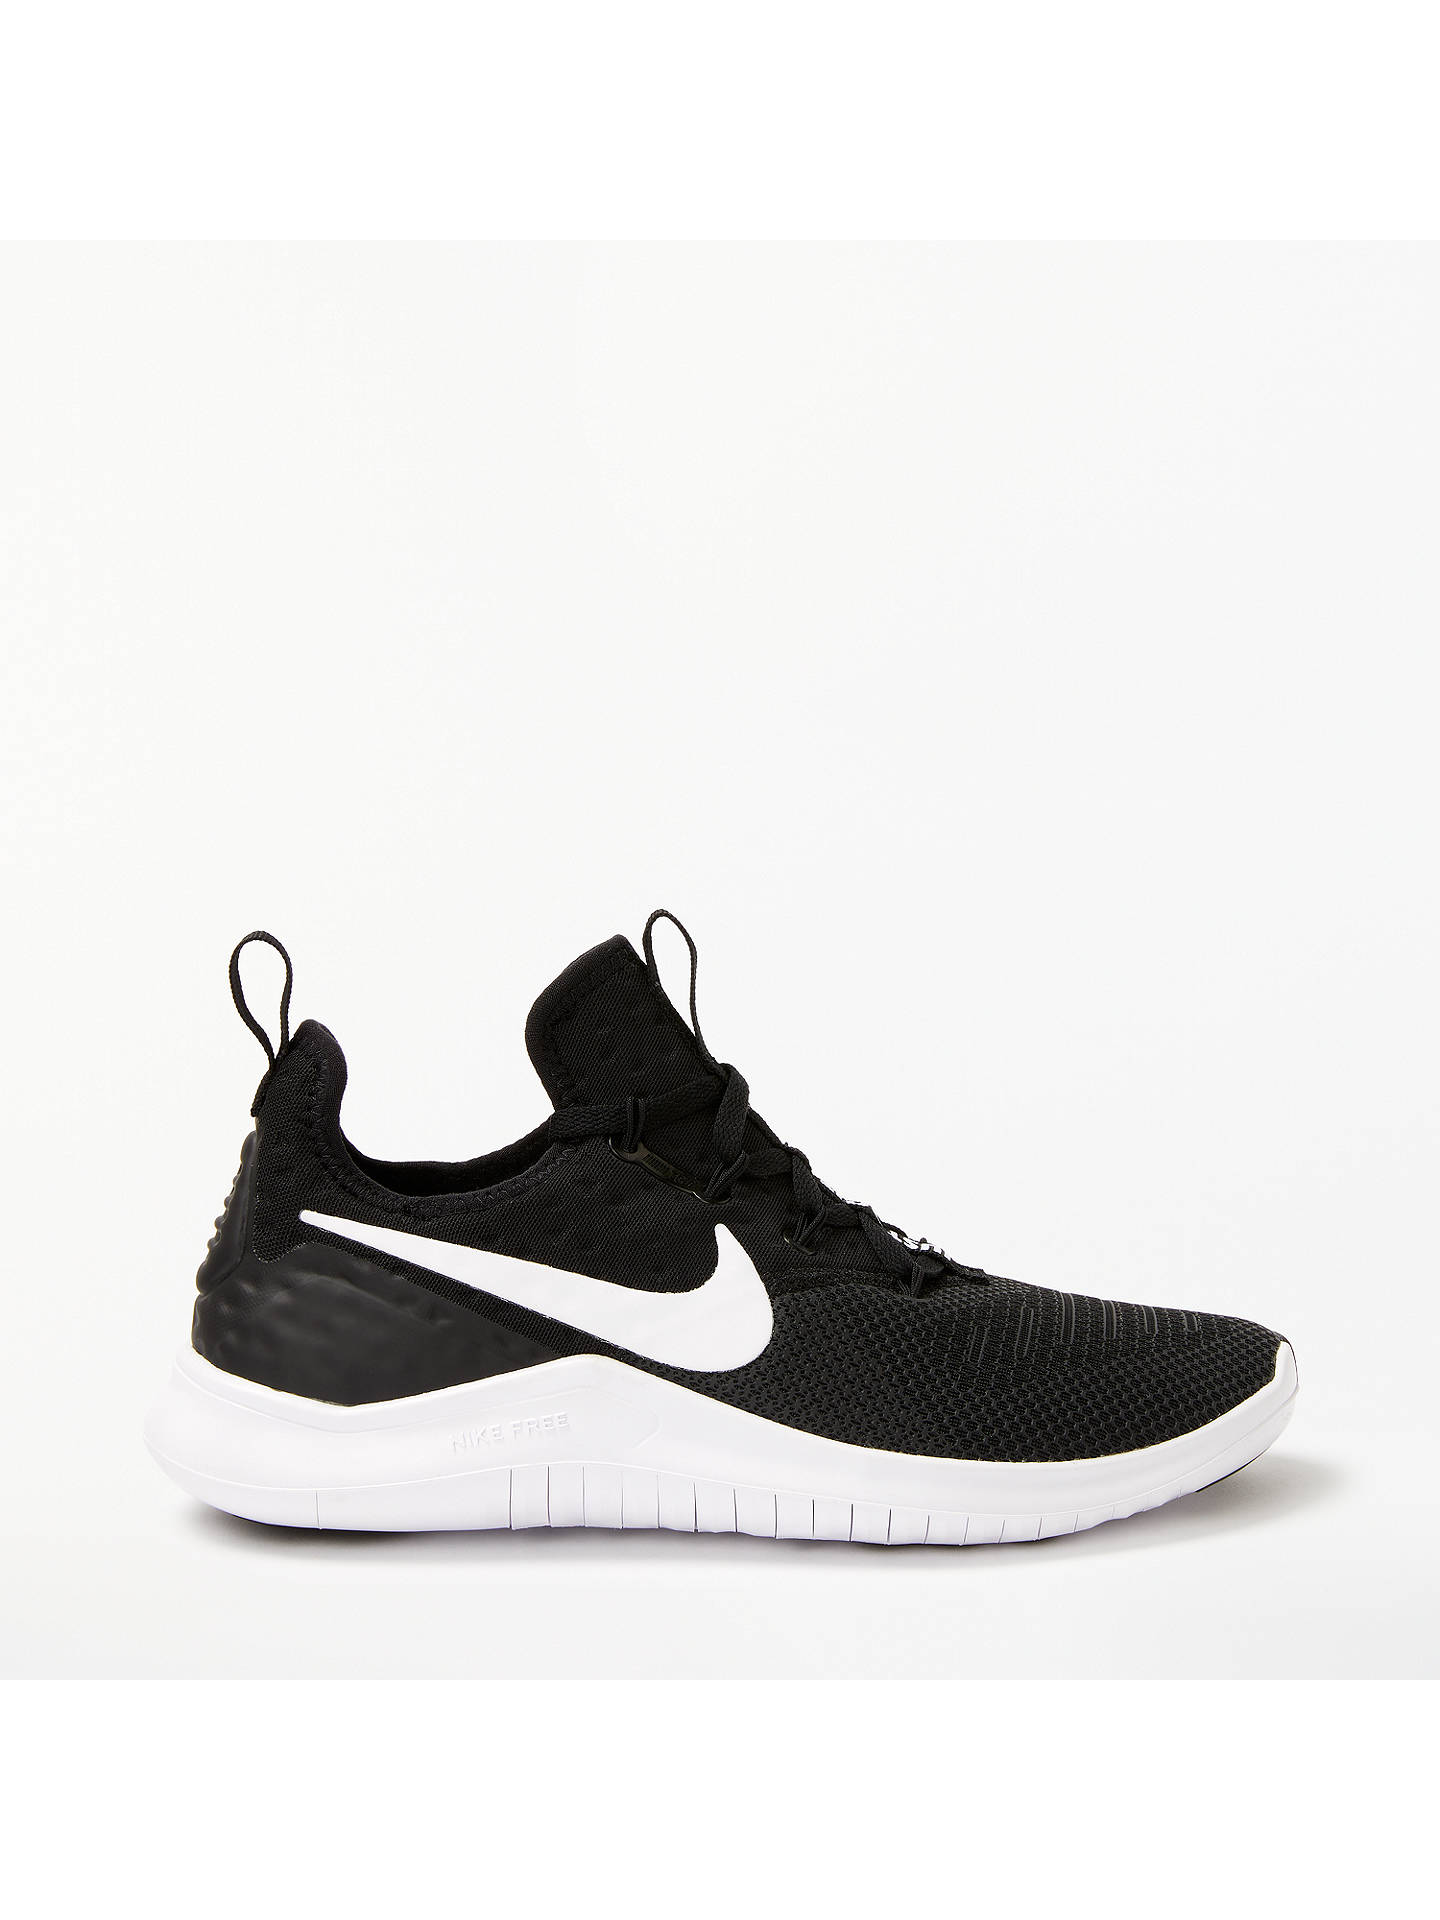 e3aacfea68673 Buy Nike Free TR 8 Women s Training Shoes